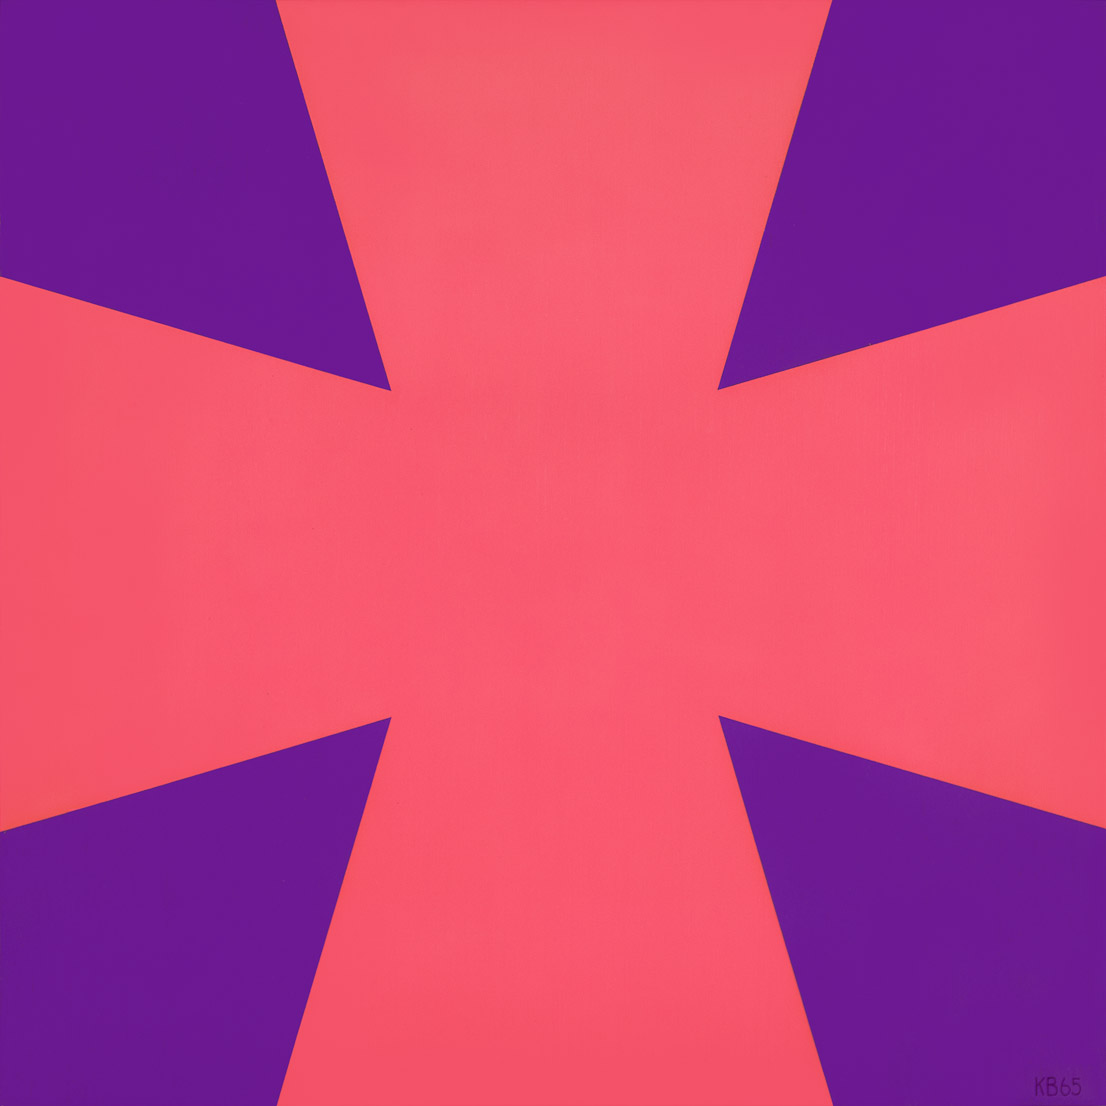 #11 , 1965  oil on canvas 30 x 30 inches; 76.2 x 76.2 centimeters